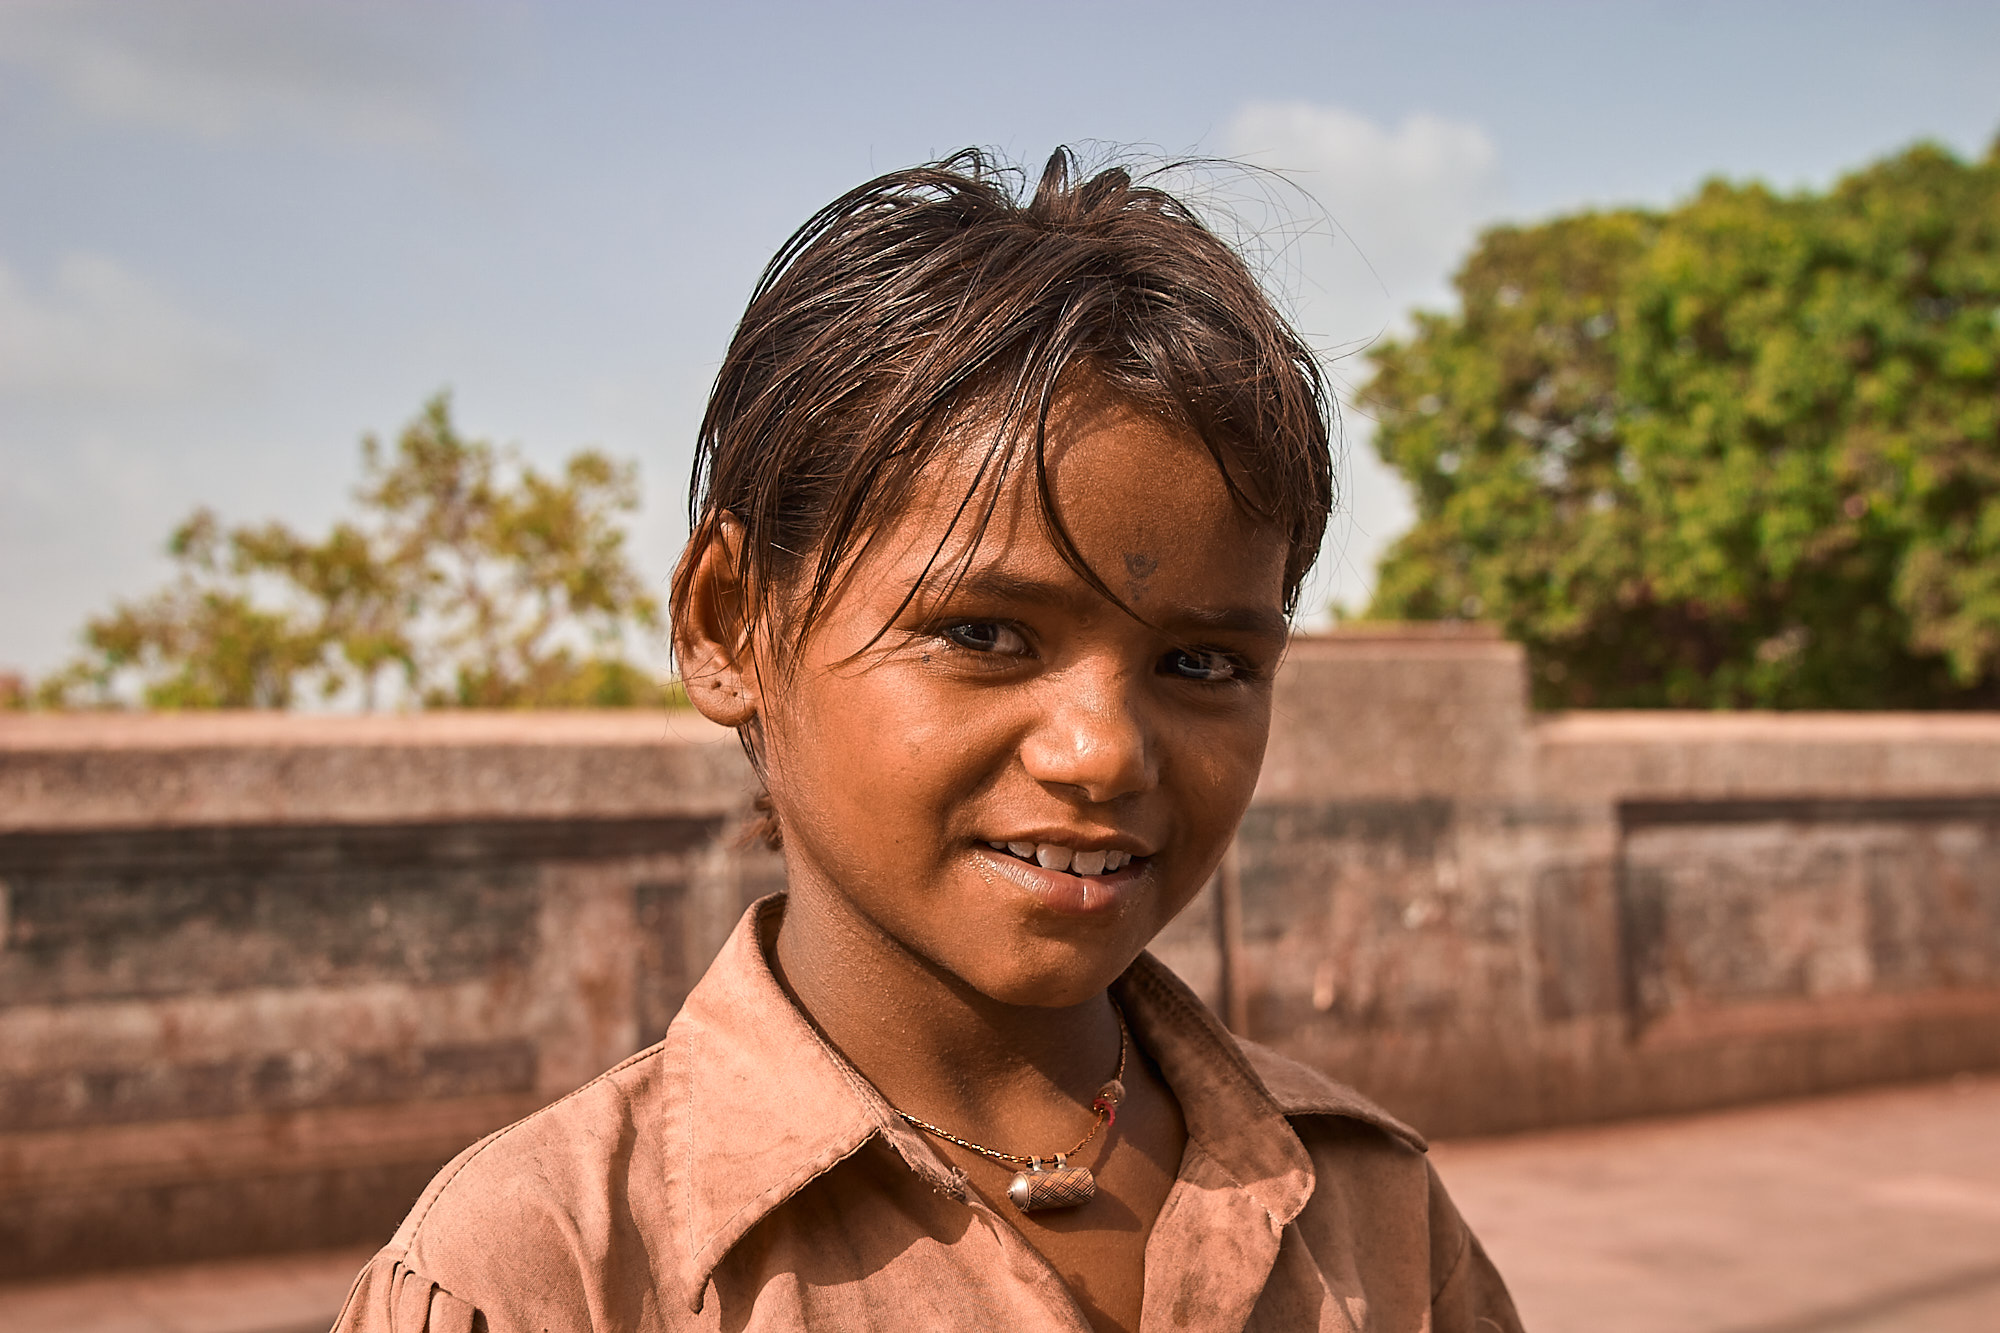 Young Child, Mumbai, India